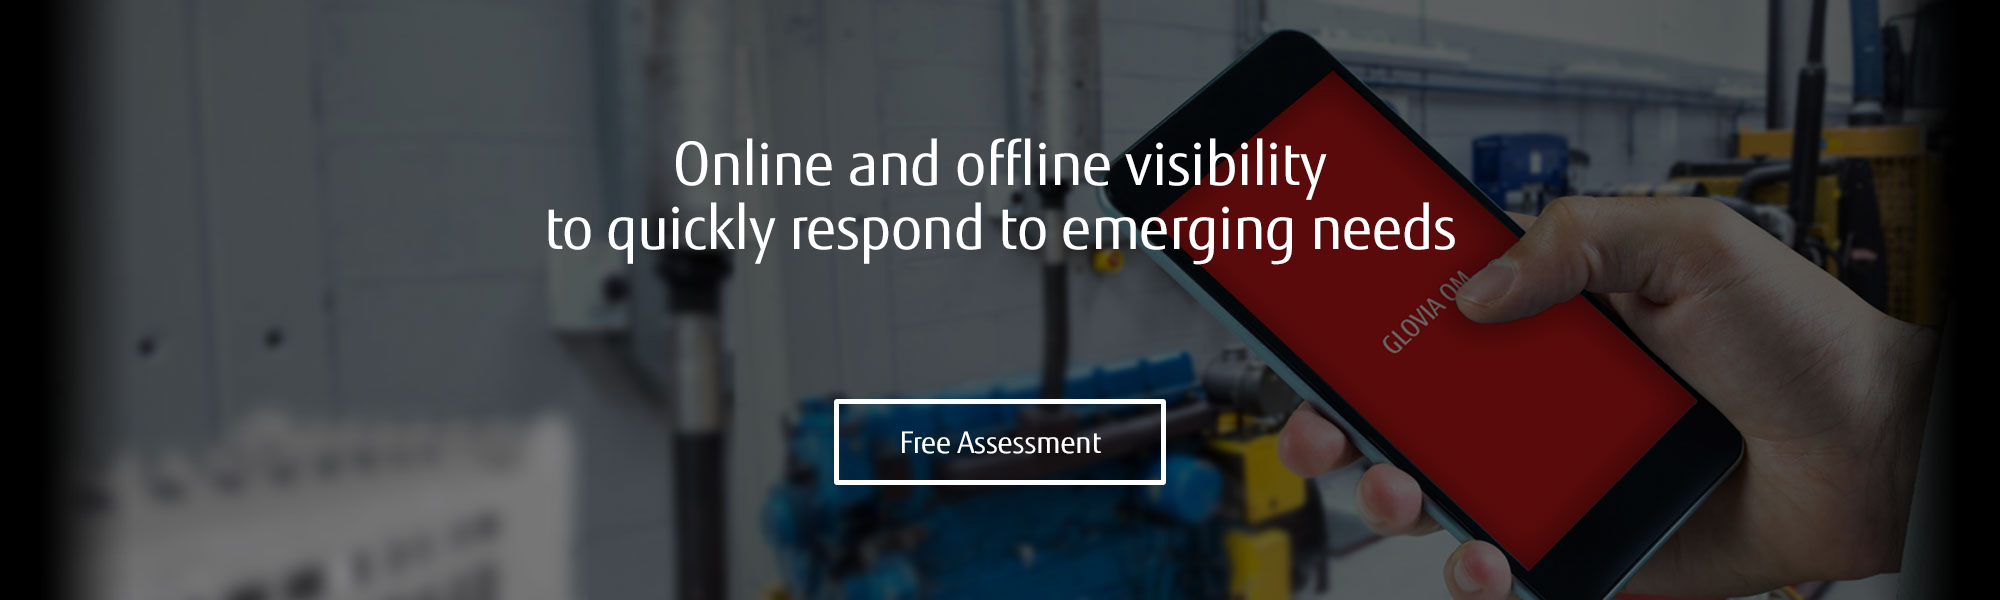 Online and offline visibility to quickly respond to emerging needs. Free assessment.